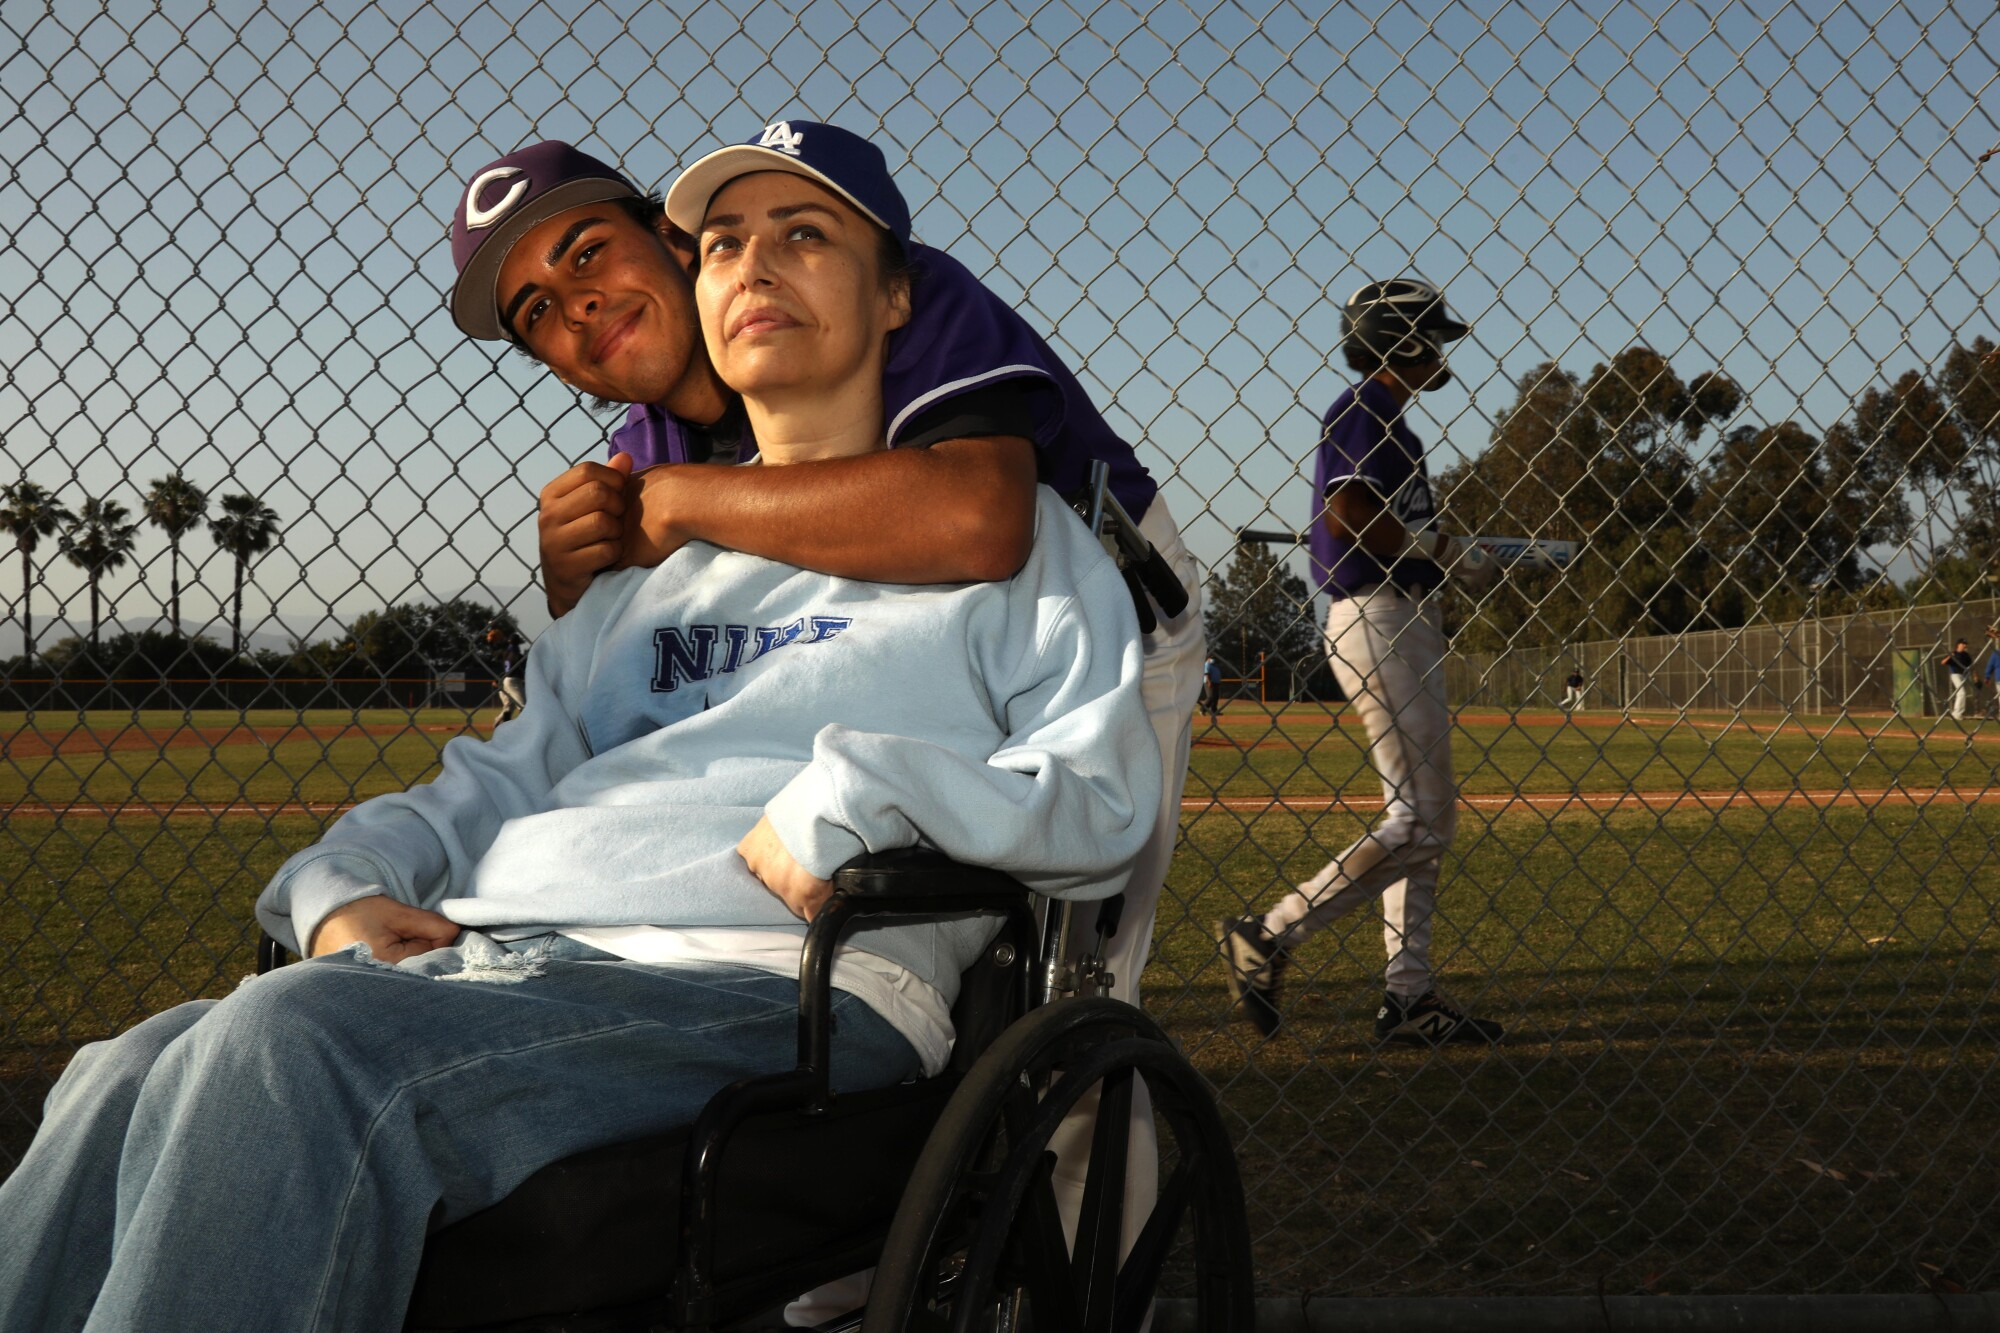 Cathedral High pitcher Geovanny Hernandez hugs his mom from behind her wheelchair